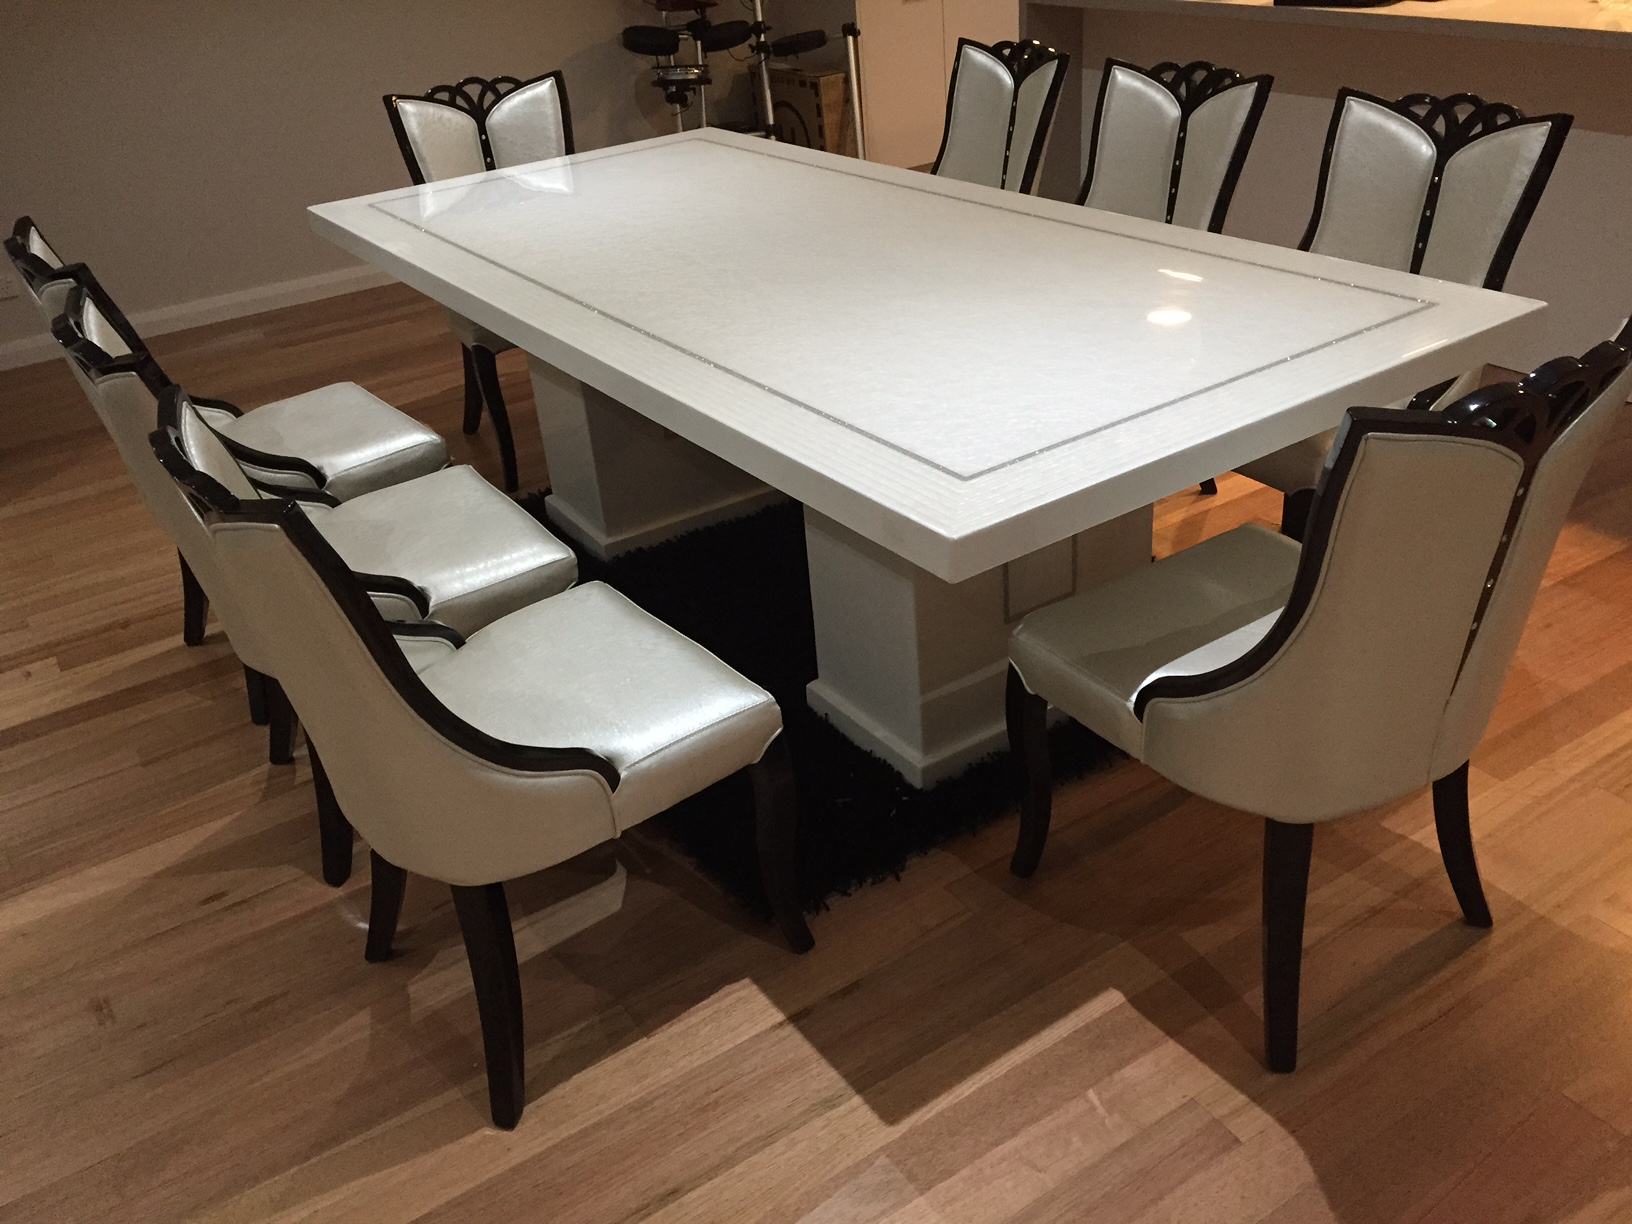 chair for dining table thomas the train with storage bianca marble 8 chairs king